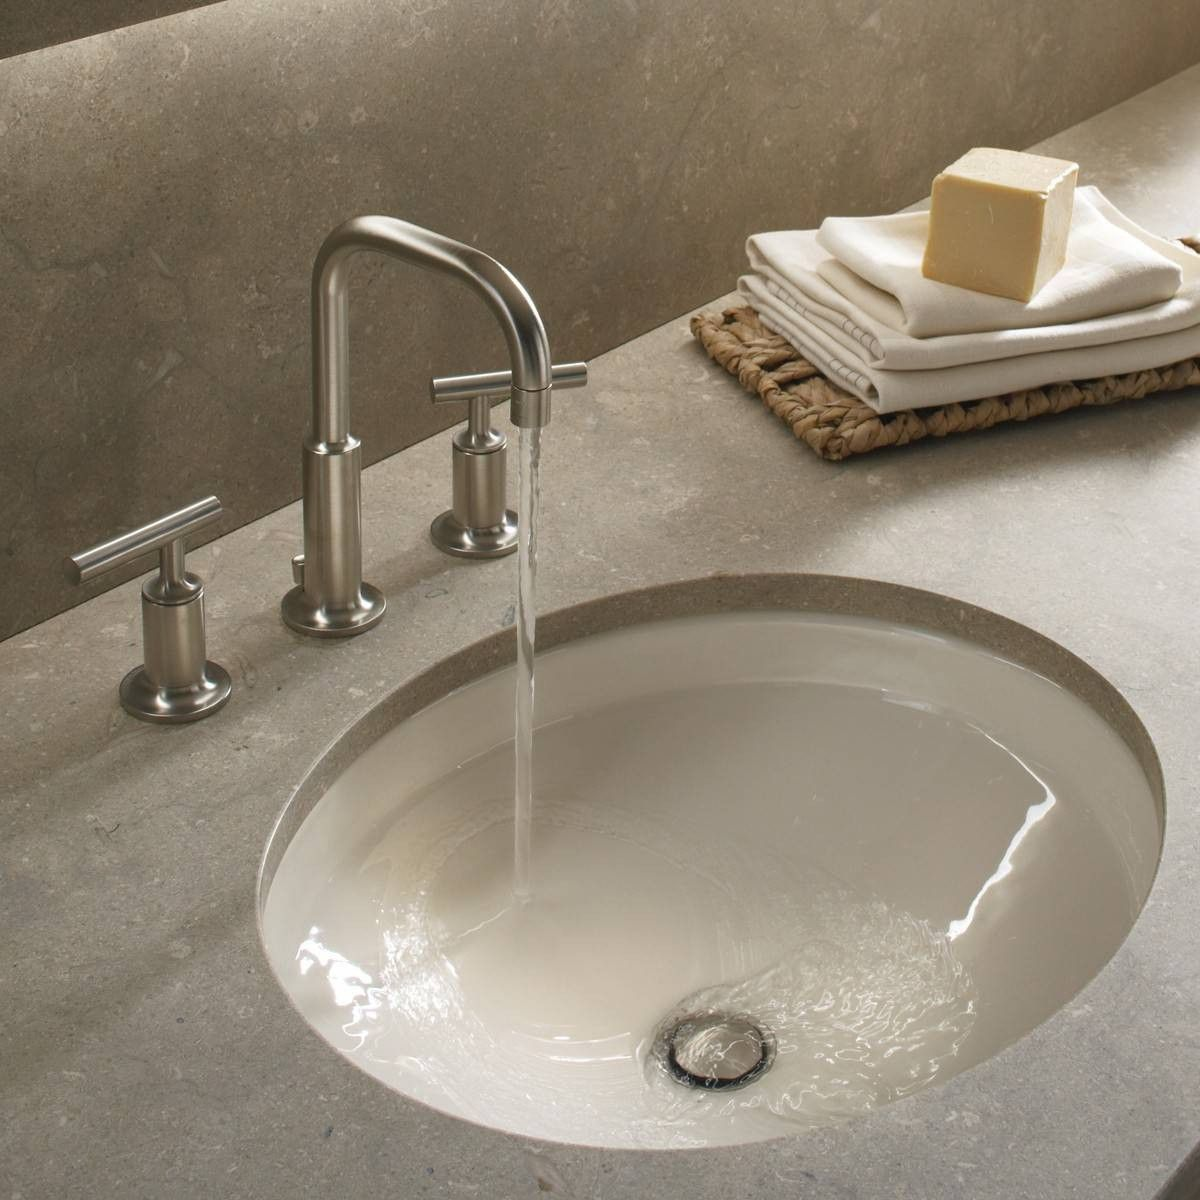 24 Here S An Overview Of How To Install Your Own Bathroom Sink